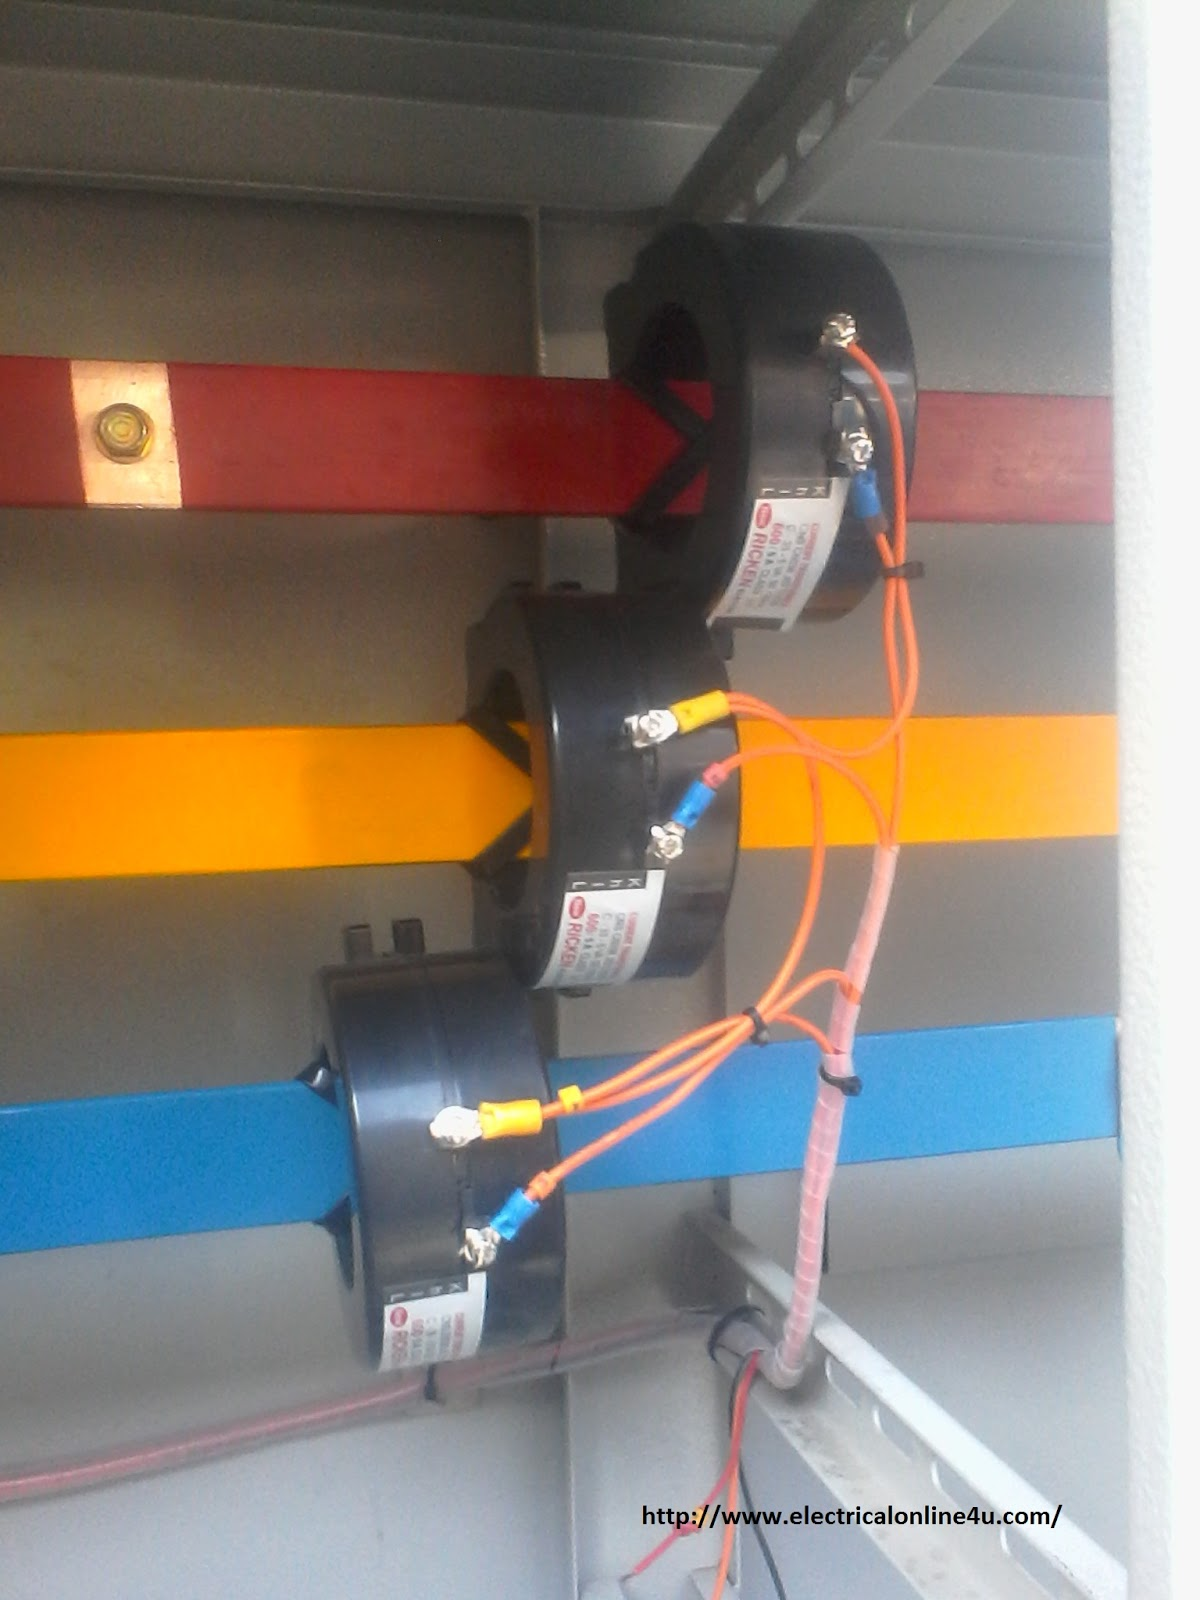 current%2Btransformer%2Binstillation%2Bfor%2Bthree%2Bphase%2Bwiring current transformer installation for three phase power supply ct Basic Electrical Wiring Diagrams at mifinder.co